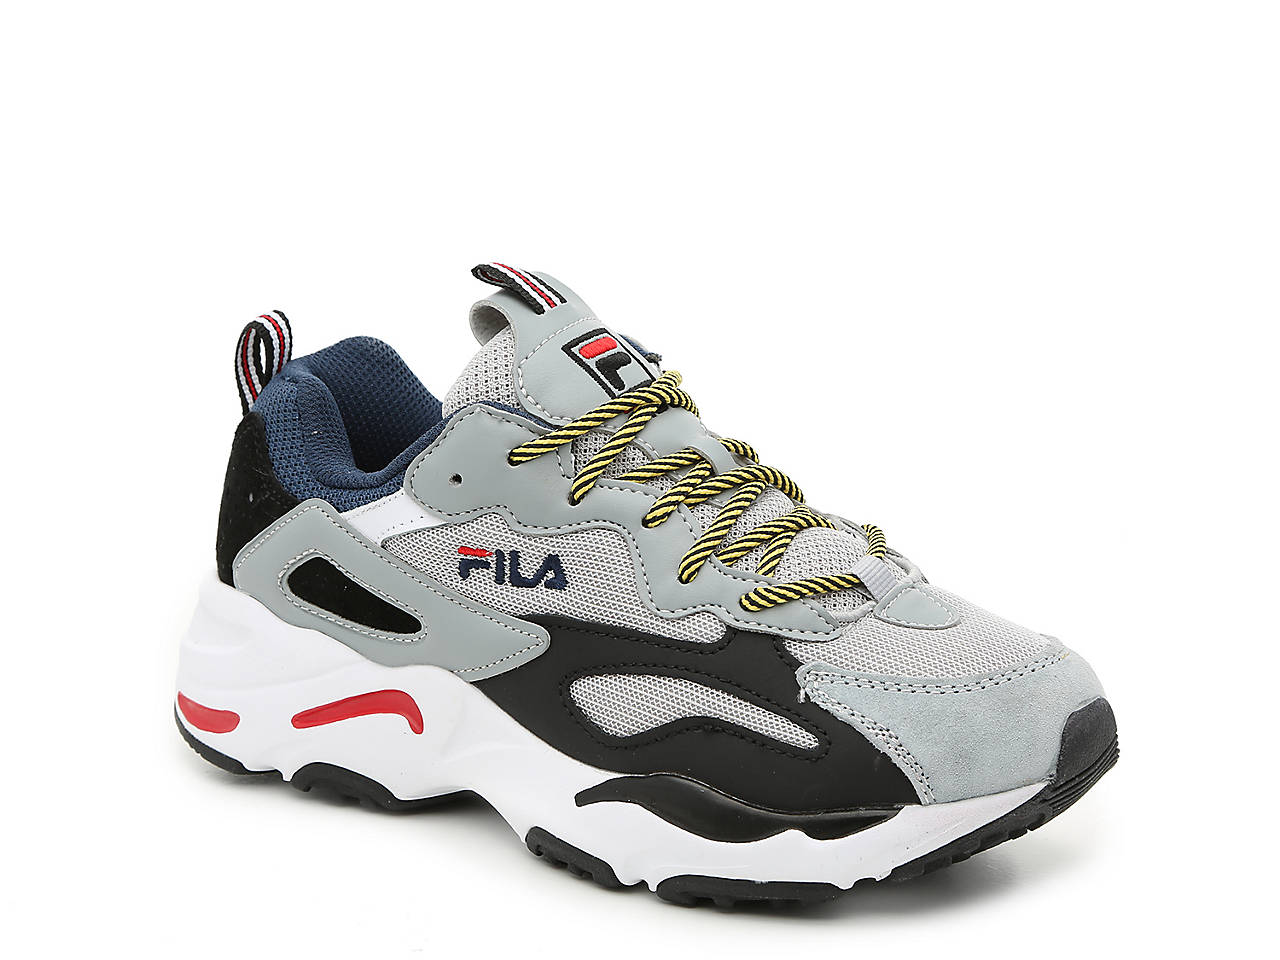 a5bd11392da Fila Ray Tracer Sneaker - Women s Women s Shoes